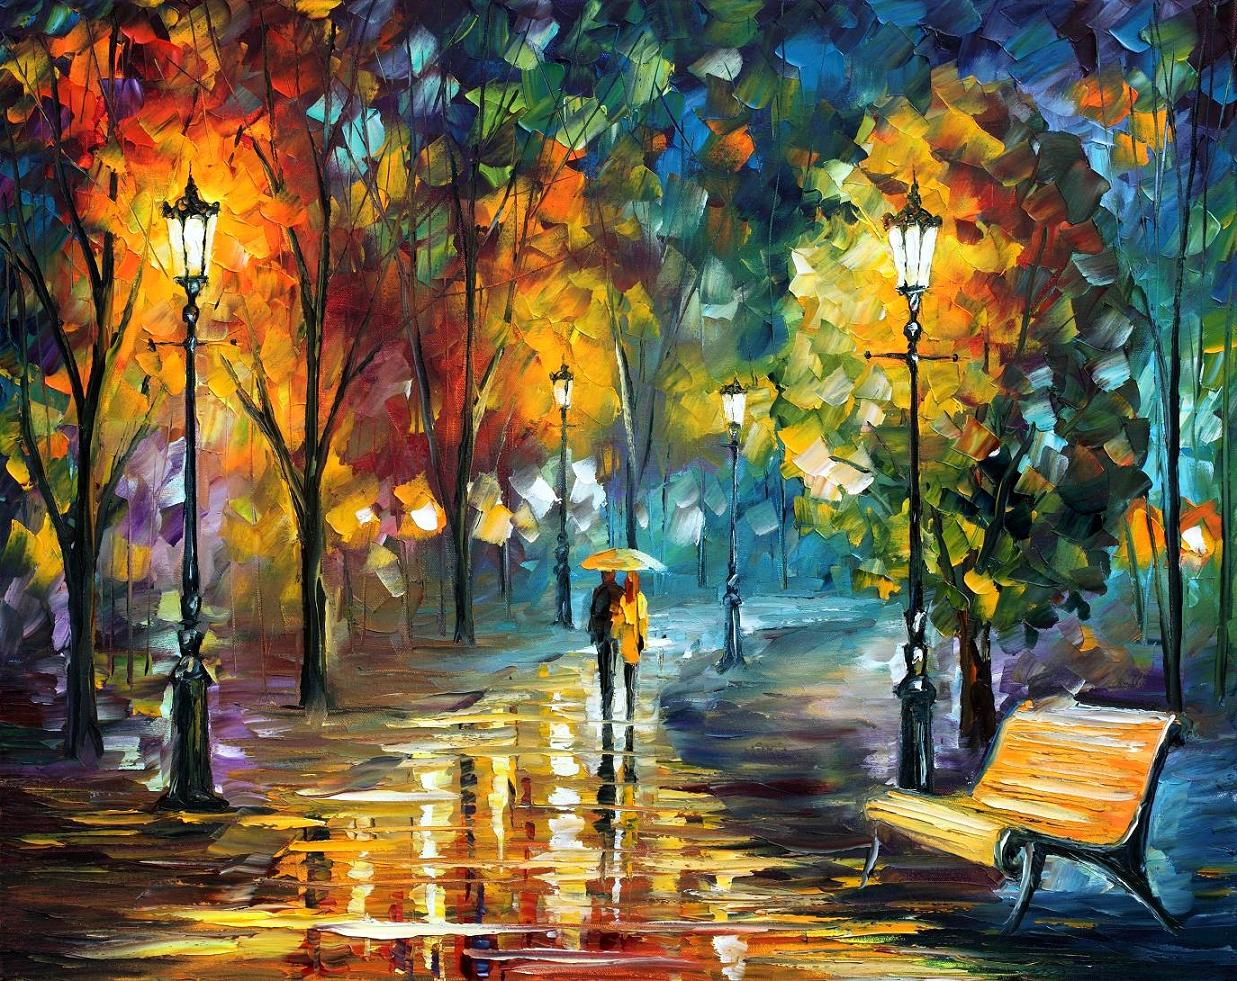 SOUL OF THE RAIN Original Oil Painting On Canvas By Leonid Afremov